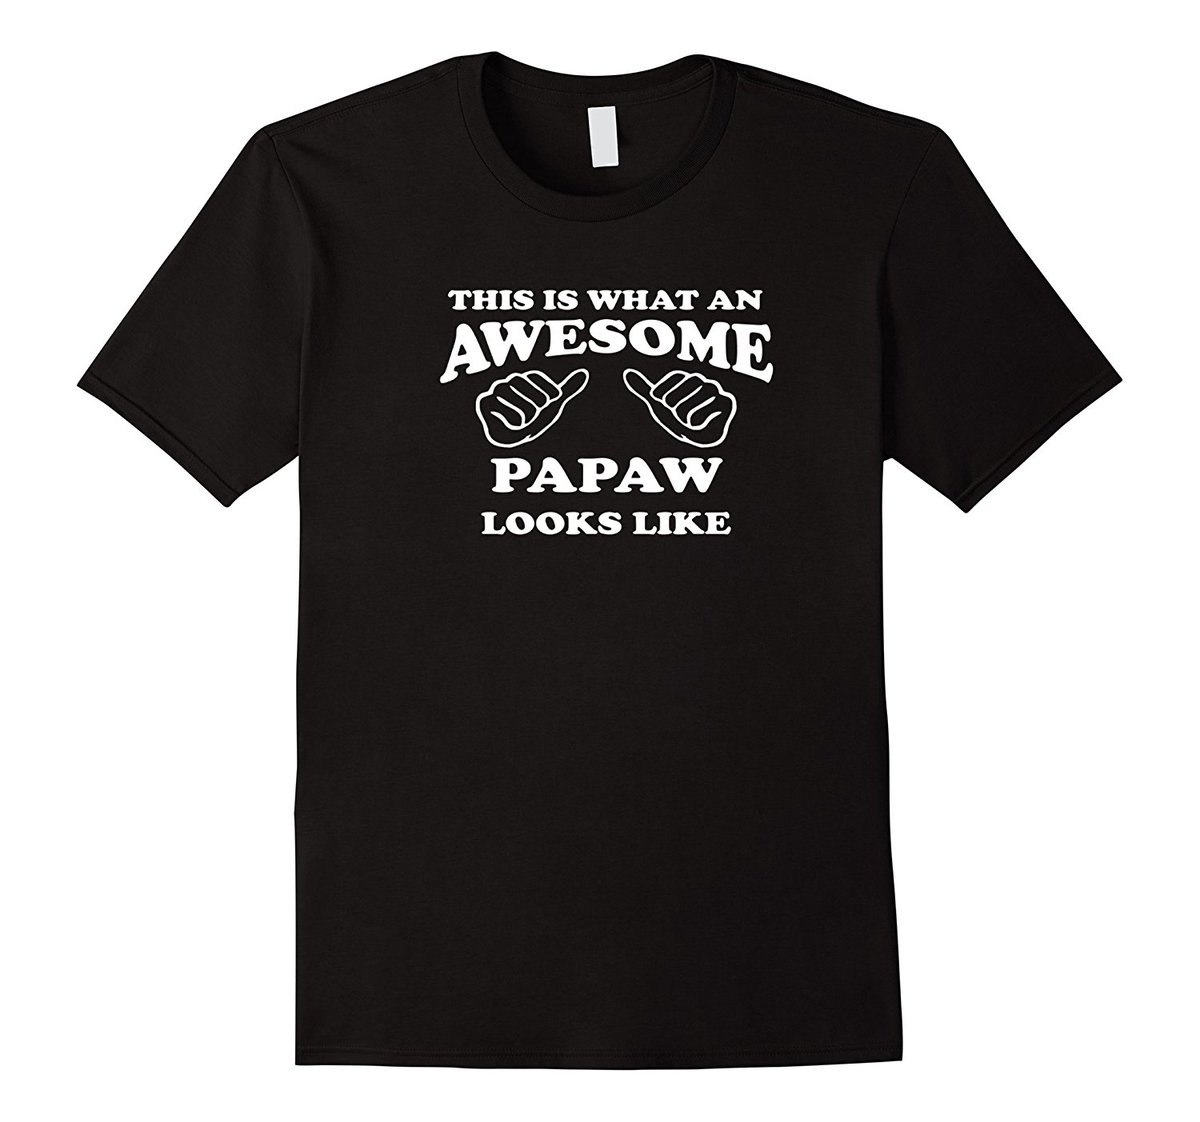 Awesome #Papaw Gift Shirt - #GrandparentsDay - https://t.co/ceruxrodcQ # https://t.co/9mbCgLSs7E